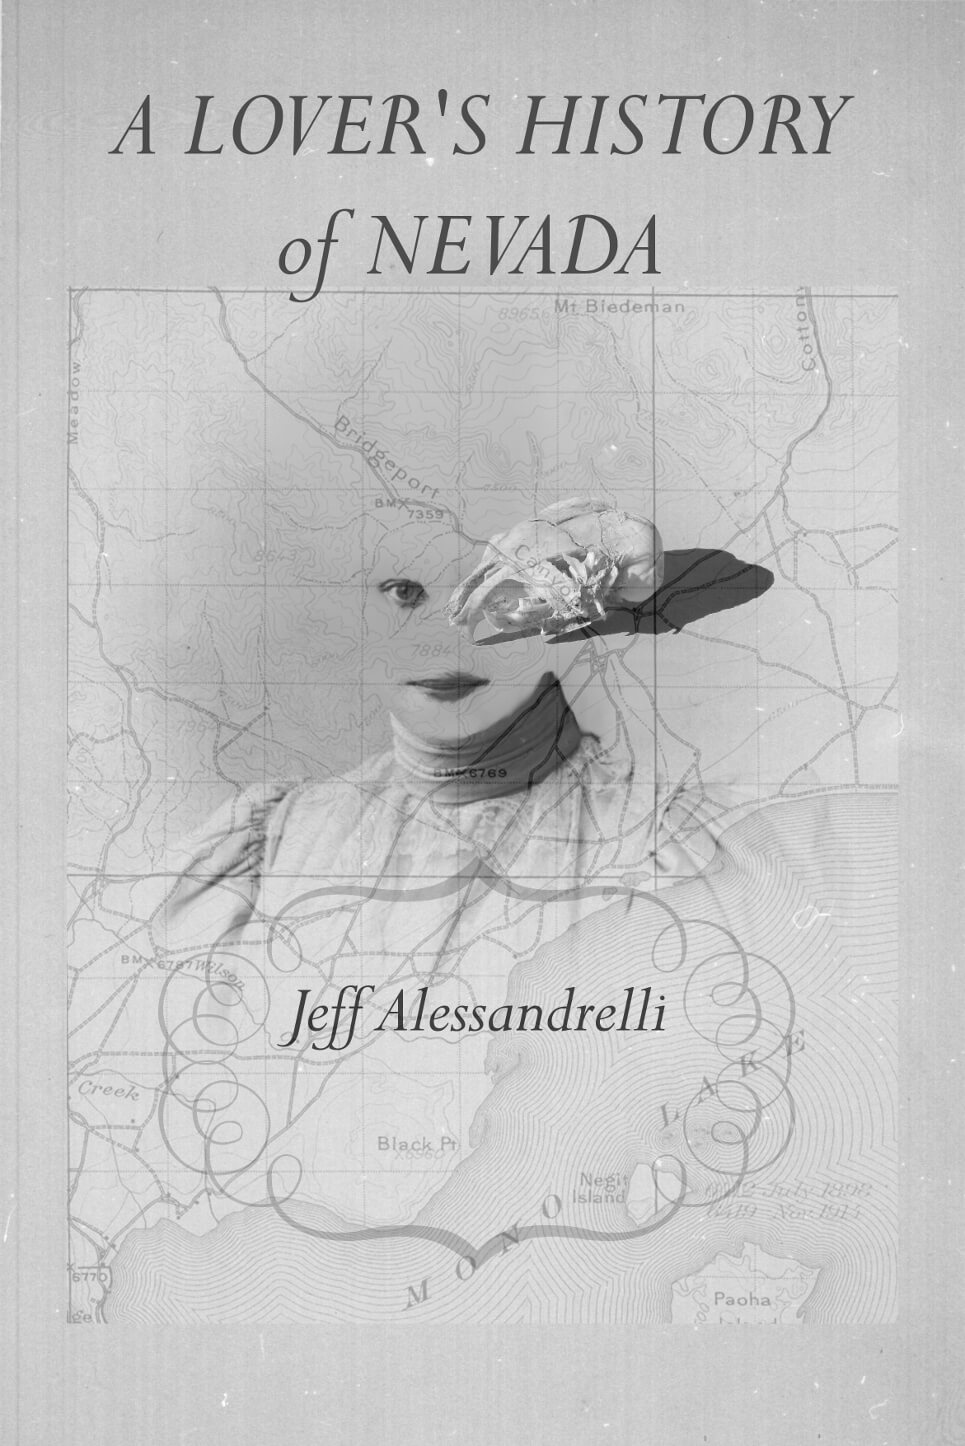 A Lover's History of Nevada